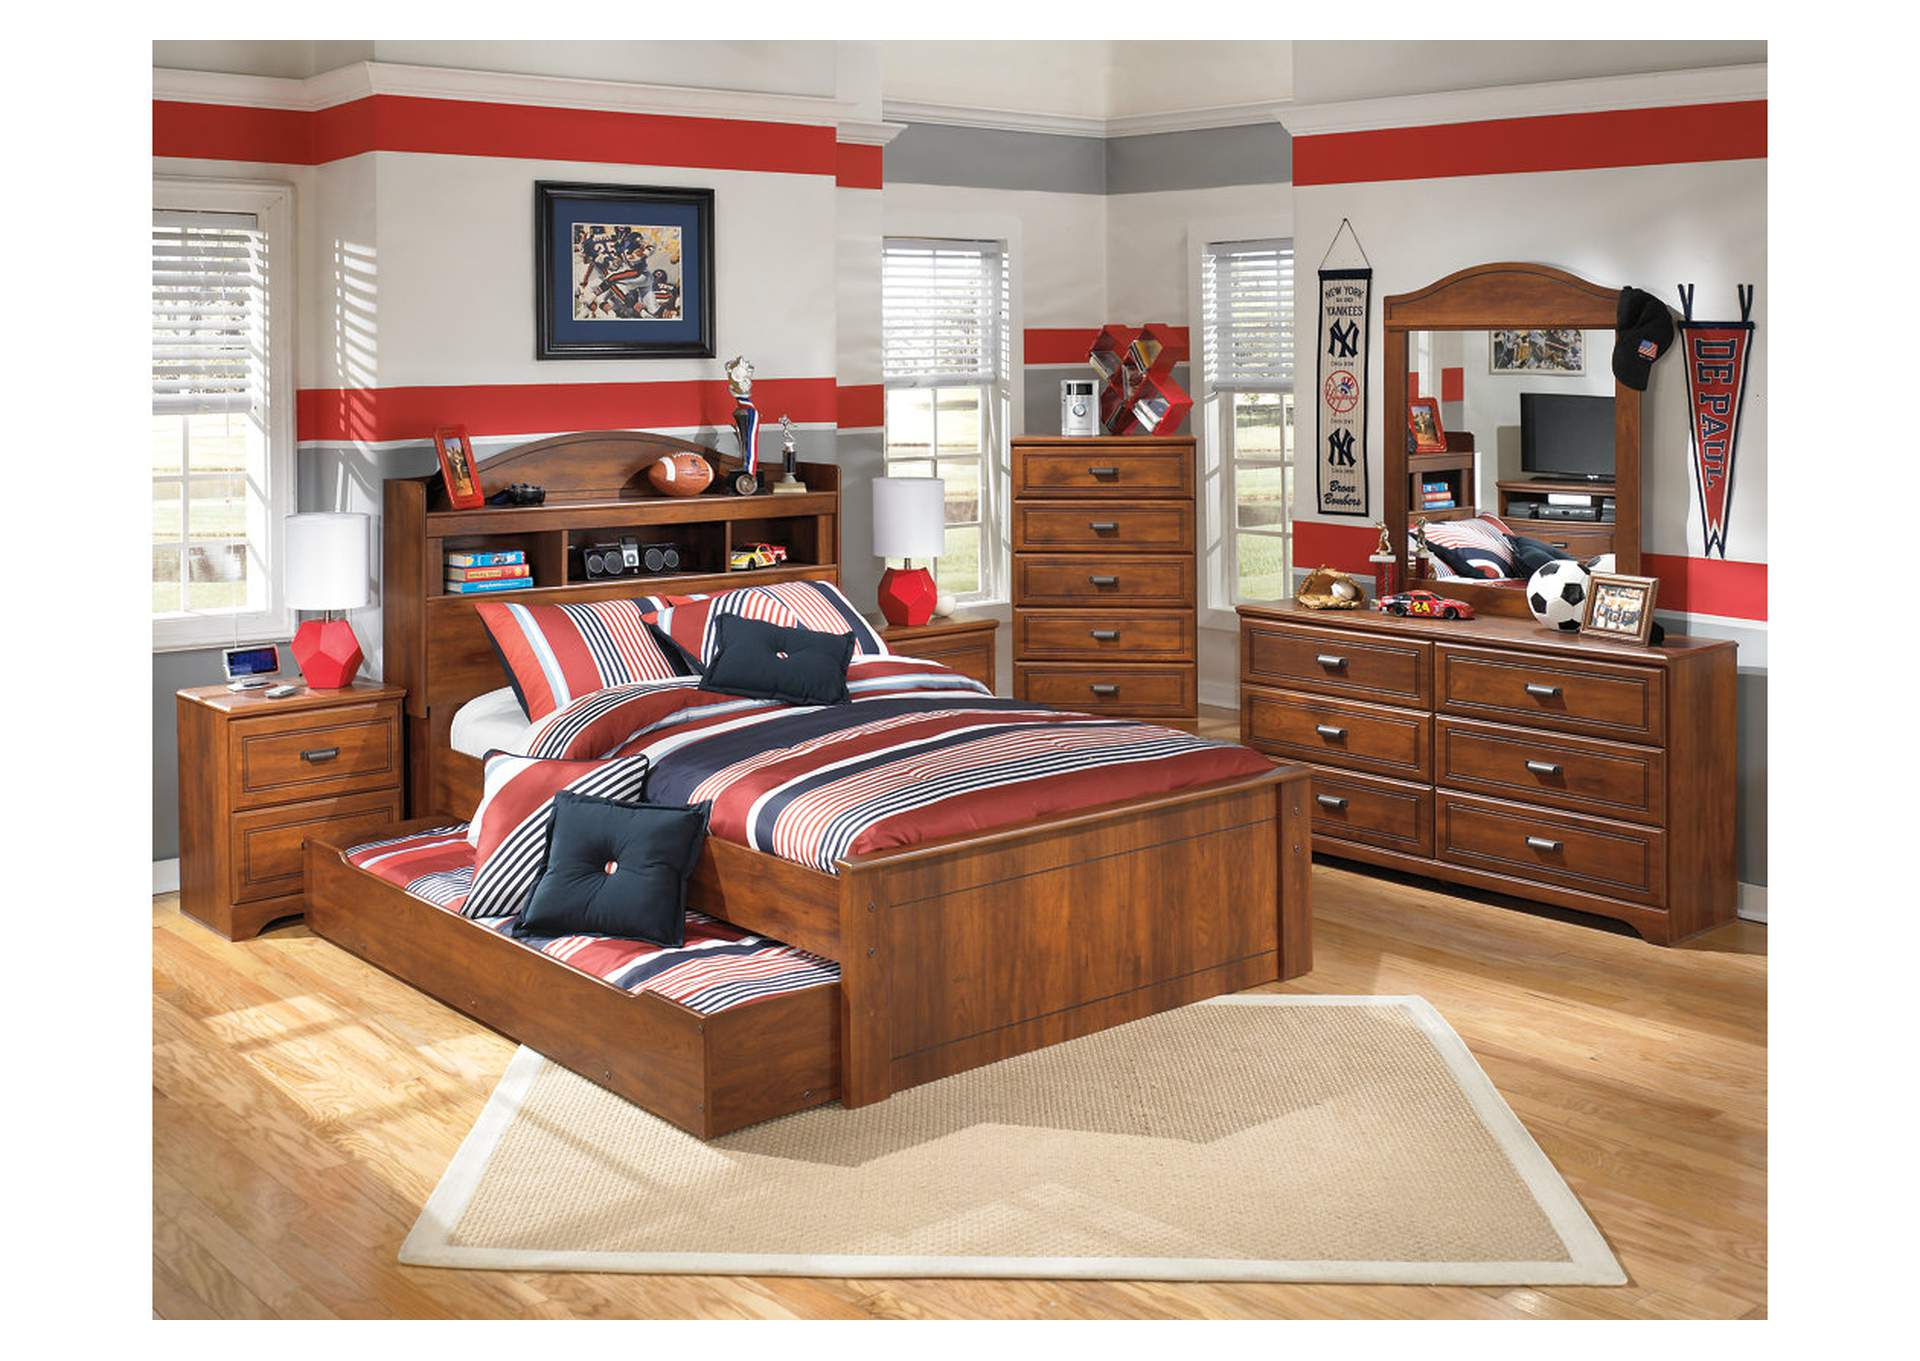 Barchan Full Bookcase Bed w/Trundle, Dresser, Mirror, Drawer Chest & Nightstand,Signature Design By Ashley